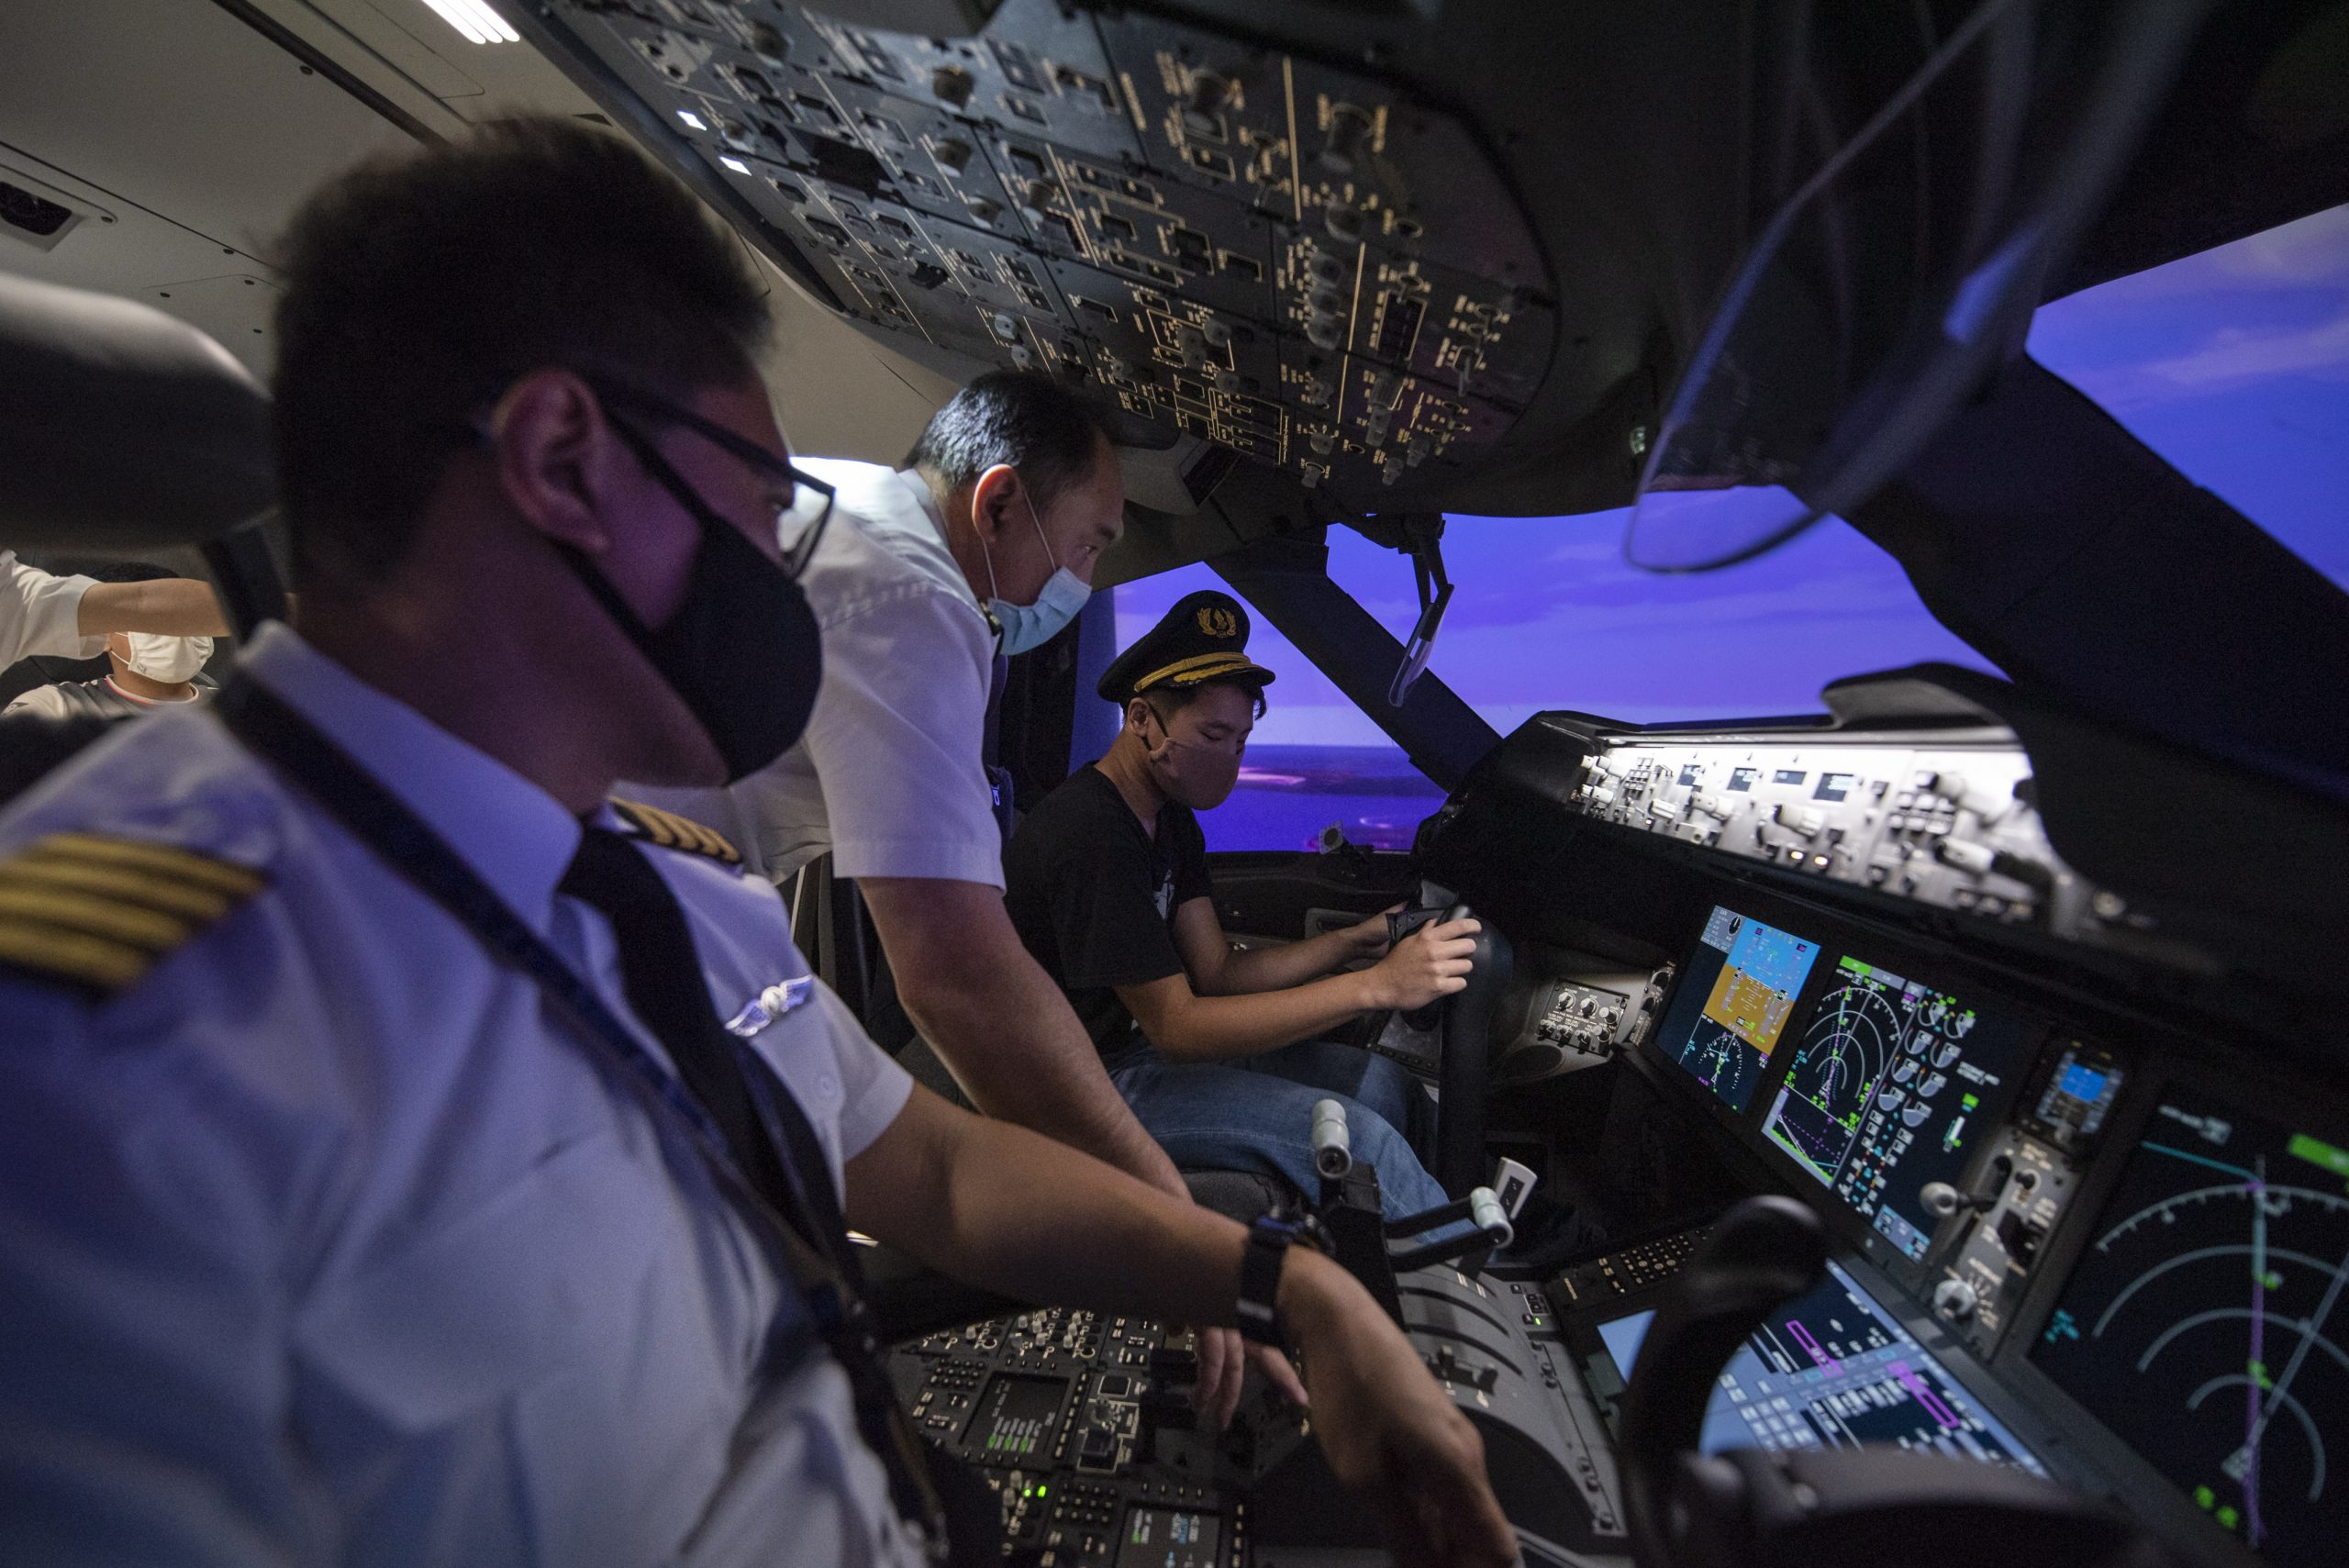 Two SIA pilots guide a participant of Inside Singapore Airlines inside the cockpit of a full flight simulator.